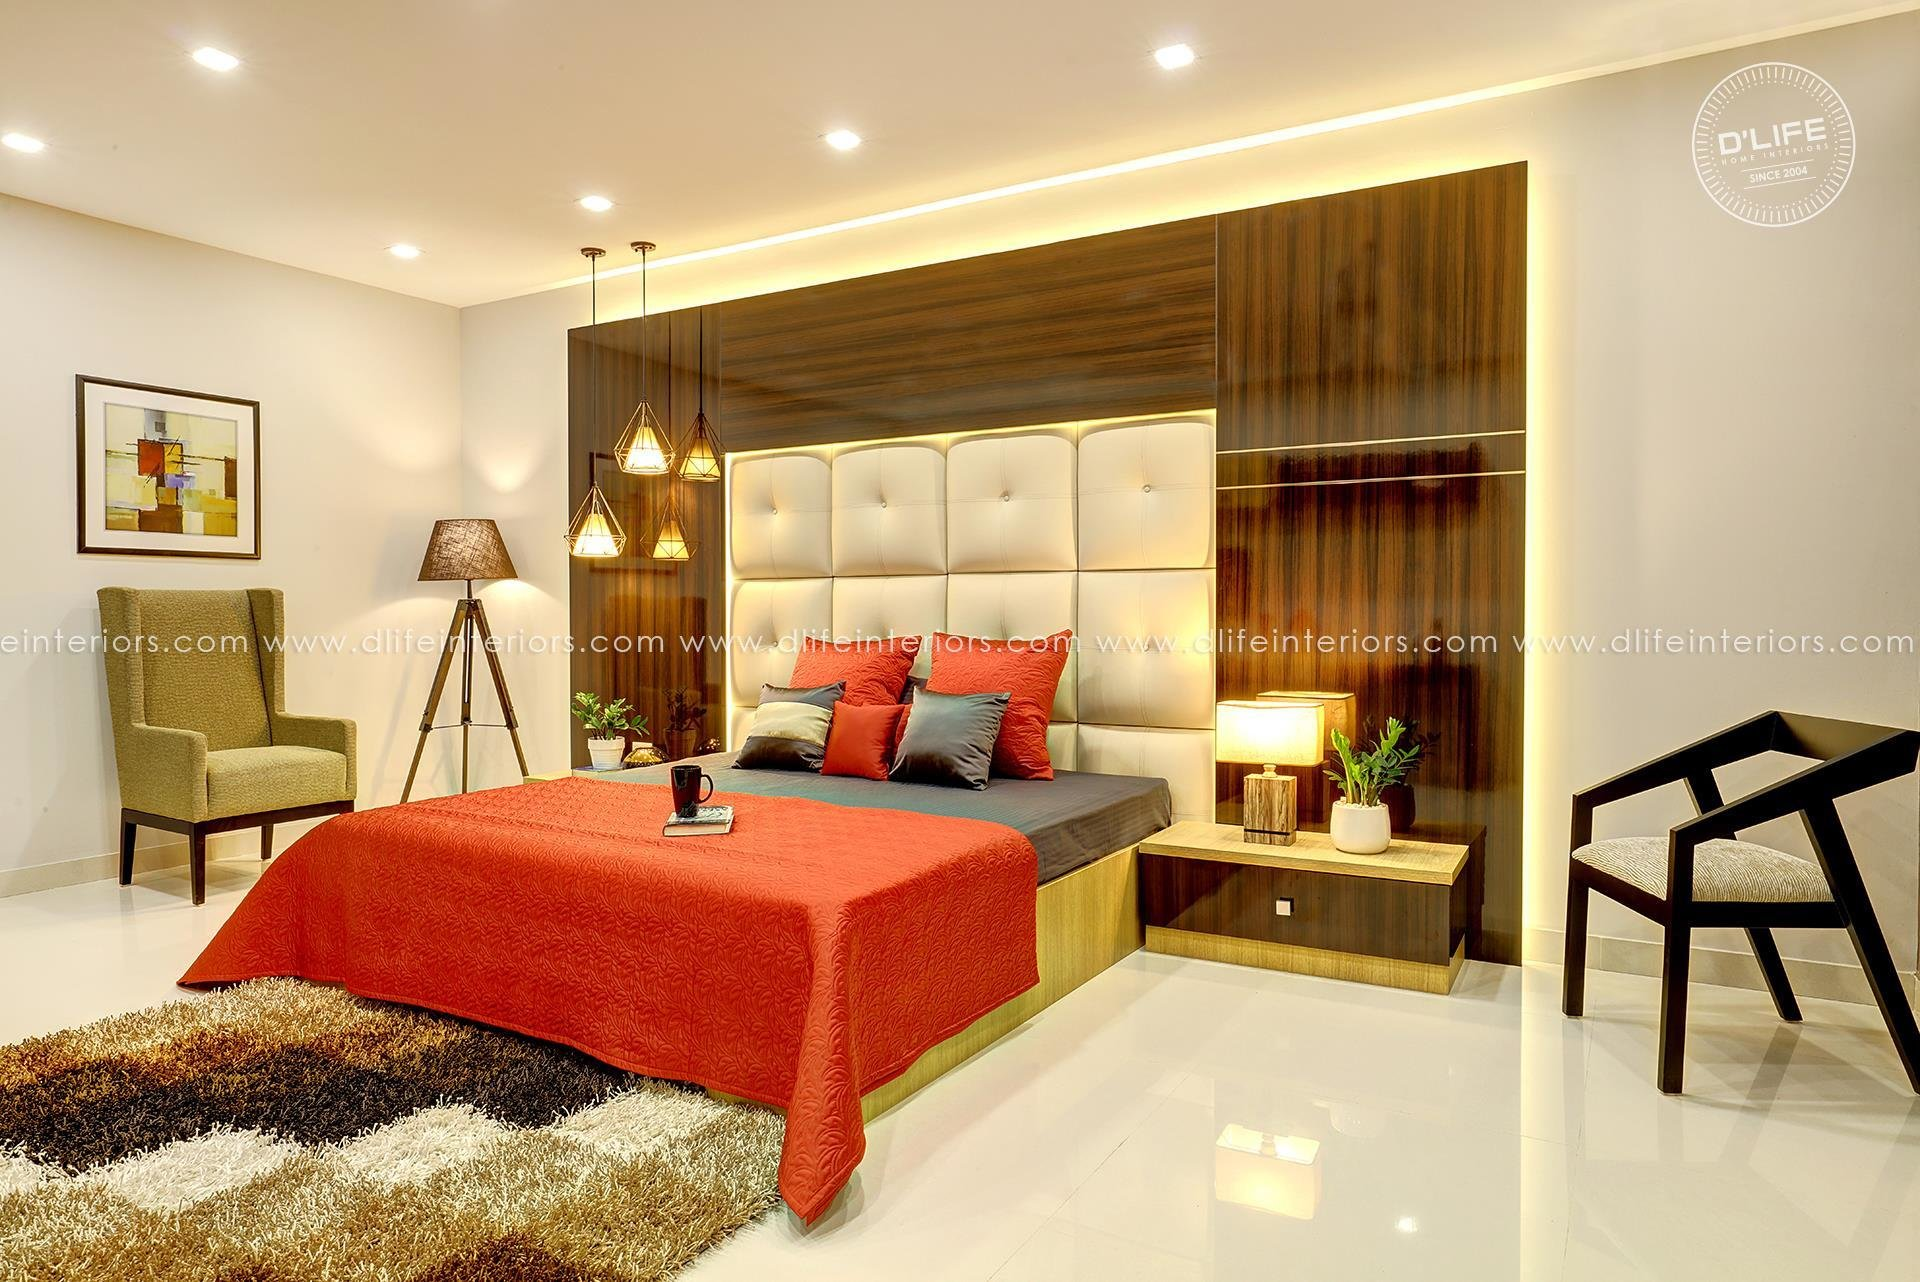 Best Home Interior Designers In Bangalore Dlife Home Interiors Blog With Pictures